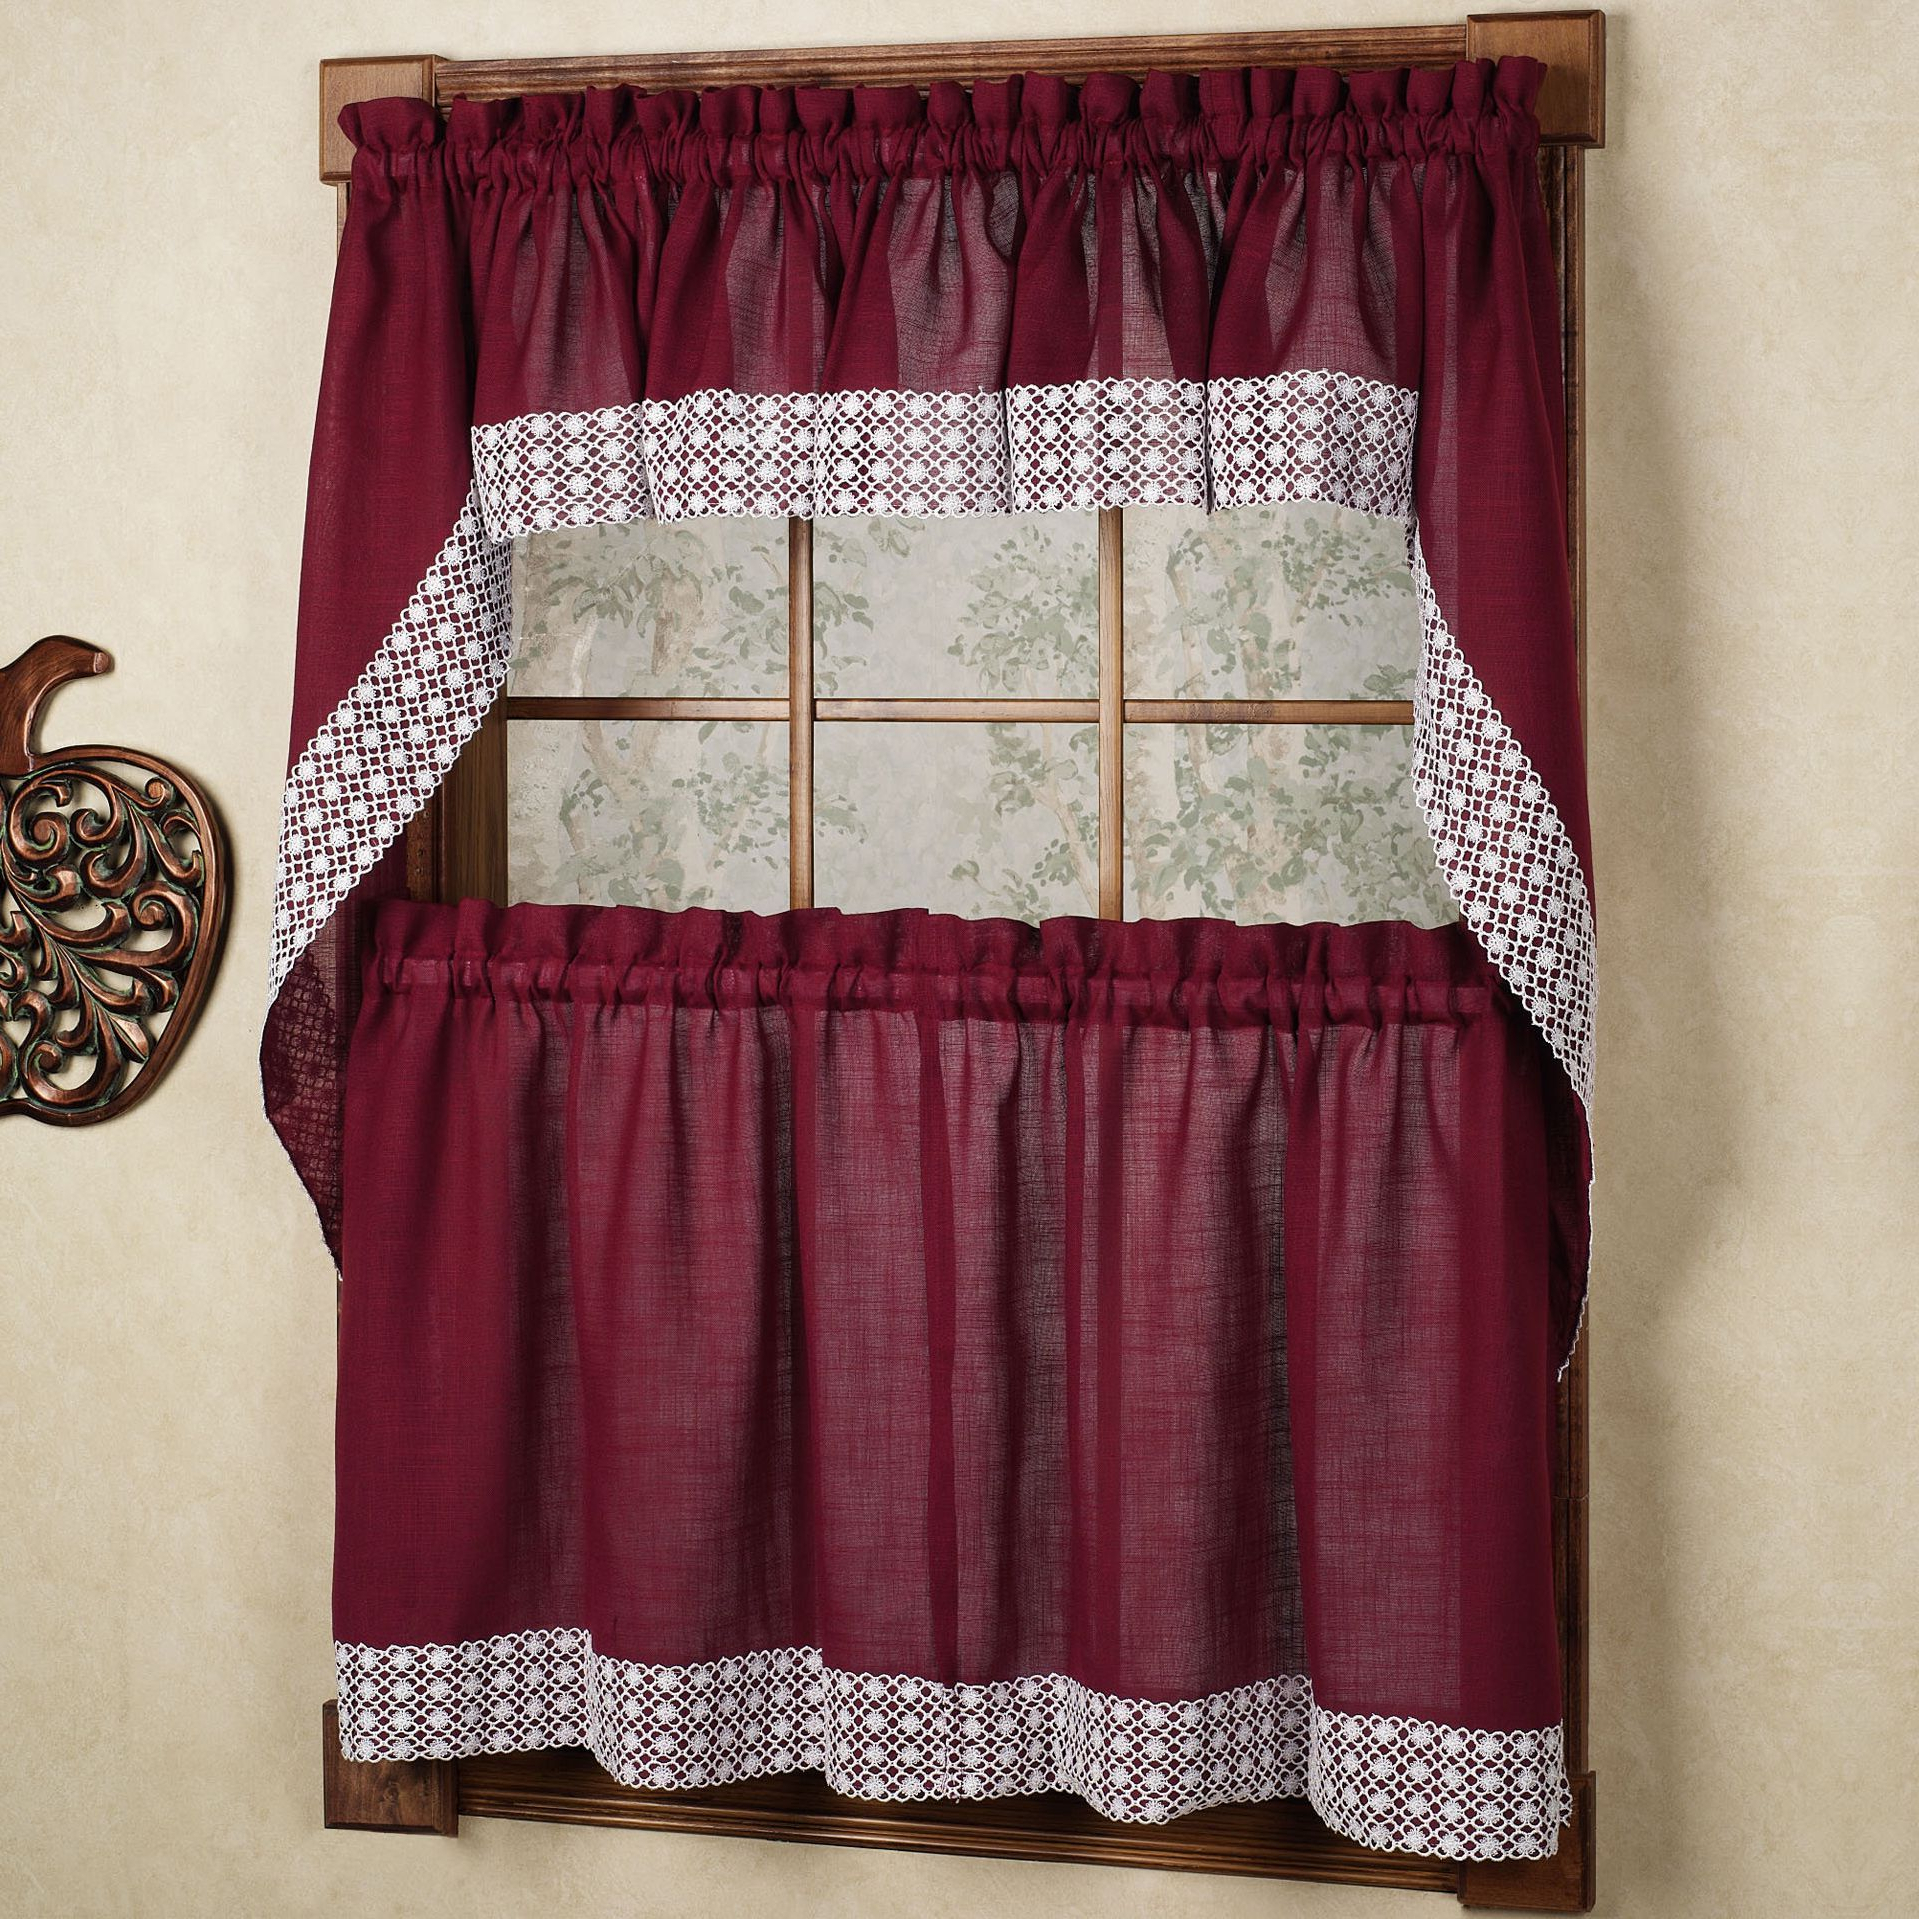 Most Recent Burgundy Country Style Curtain Parts With White Daisy Lace With Regard To Country Style Curtain Parts With White Daisy Lace Accent (Gallery 2 of 20)